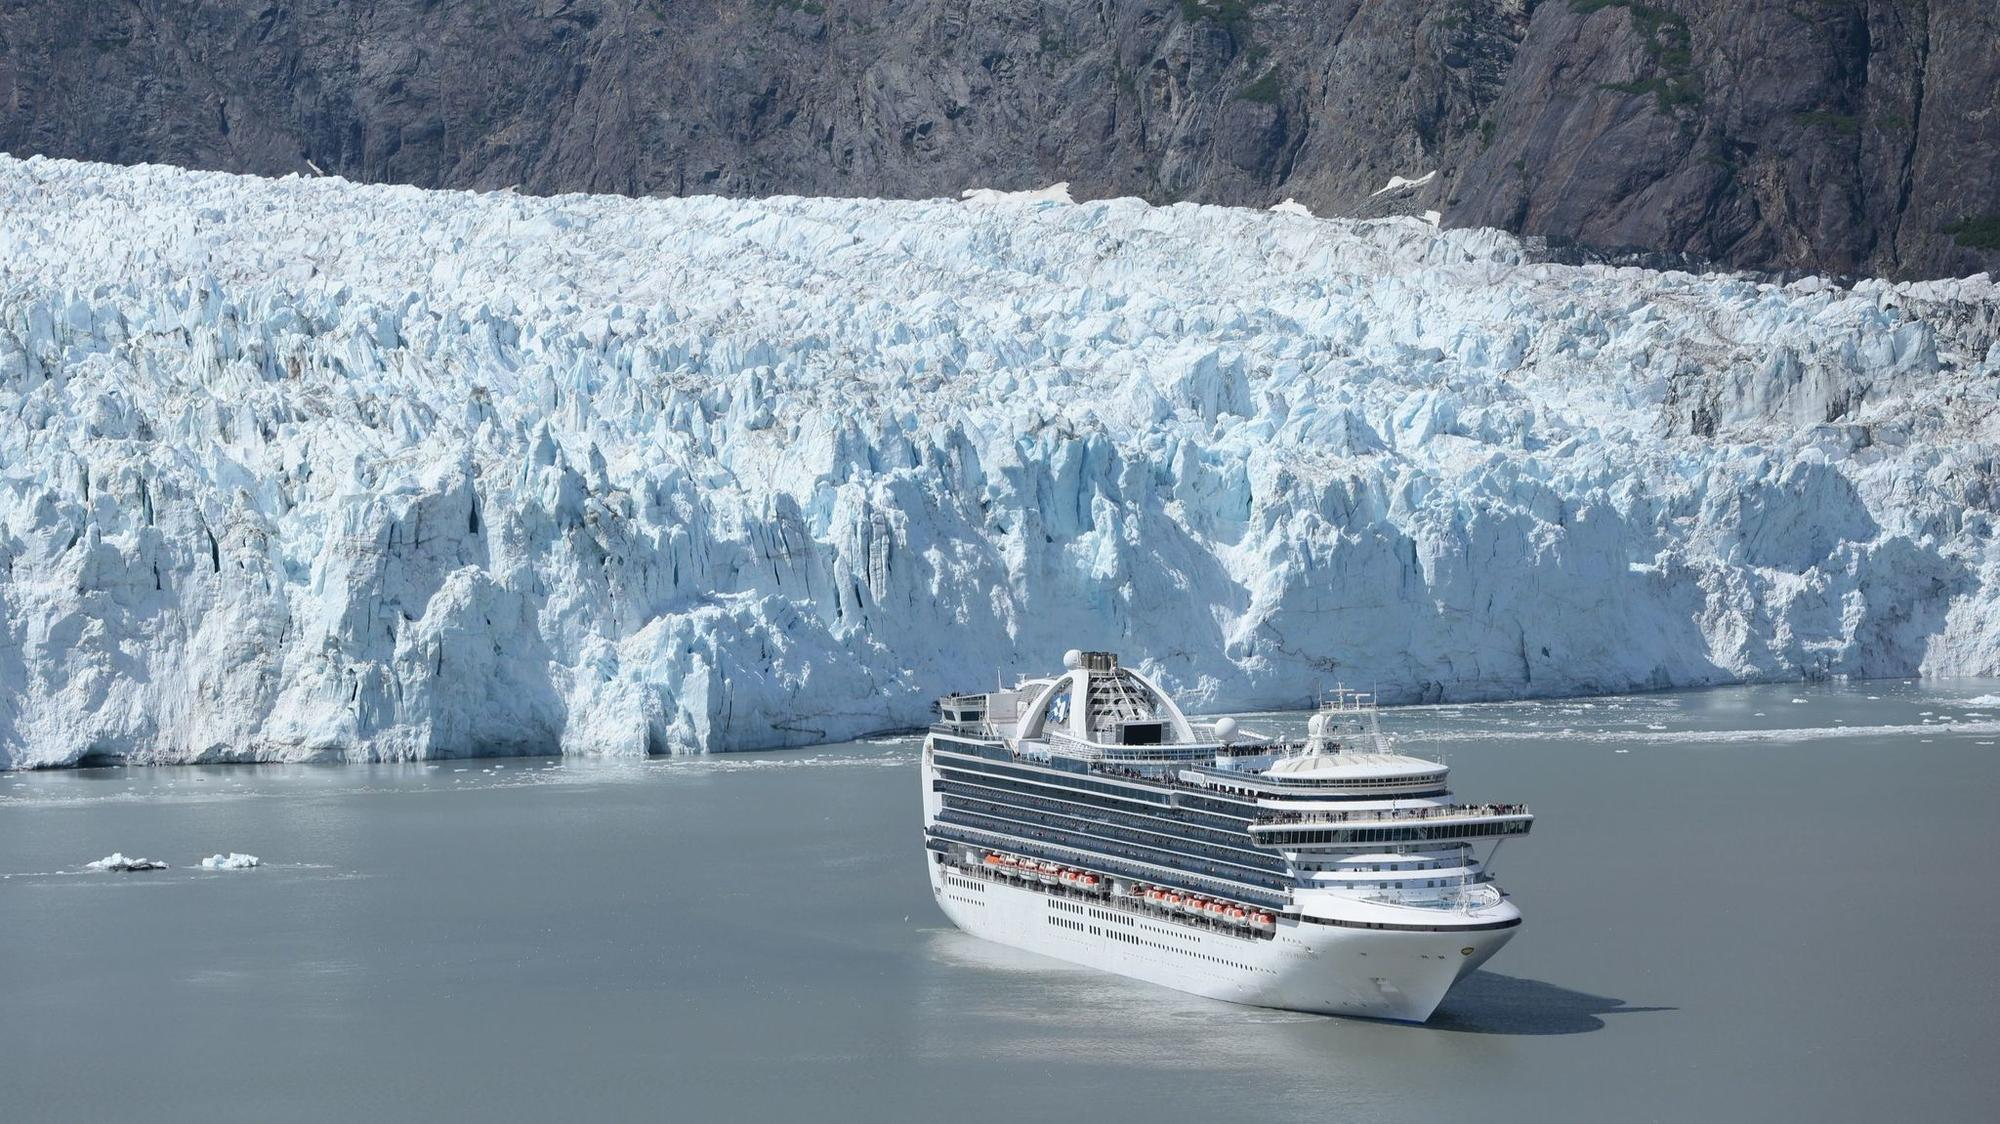 Princess Will Mark 50 Years Of Alaska Cruises In 2019 With